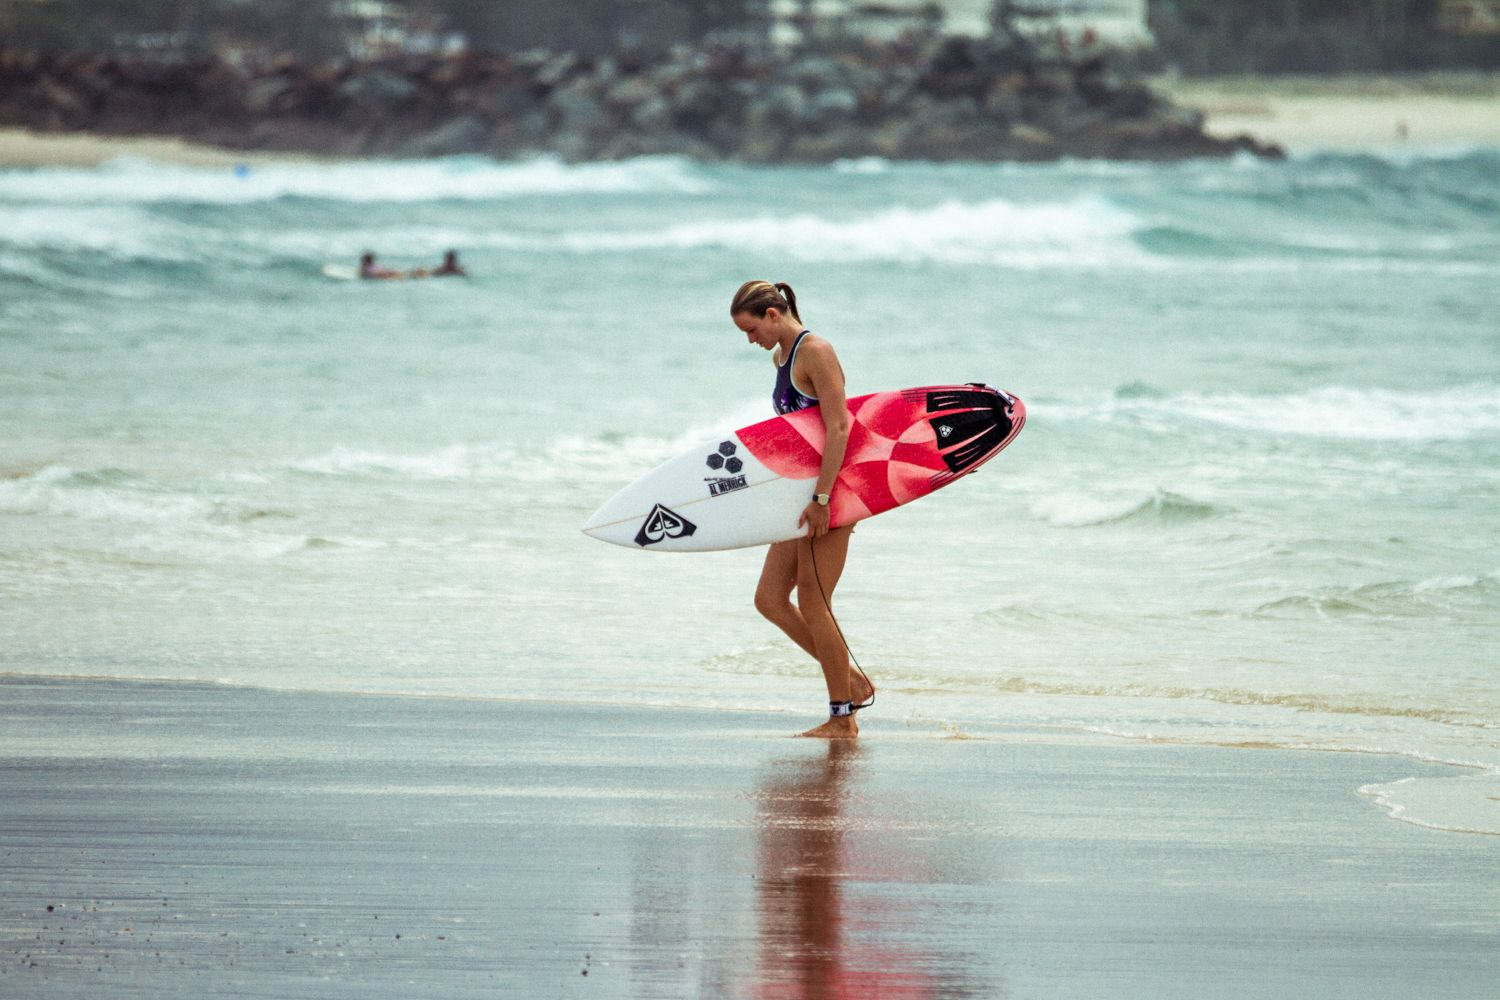 5400f937b6cc4 Bianca Buitendag #ROXYpro | ROXY Pro | World surf league, World surf ...